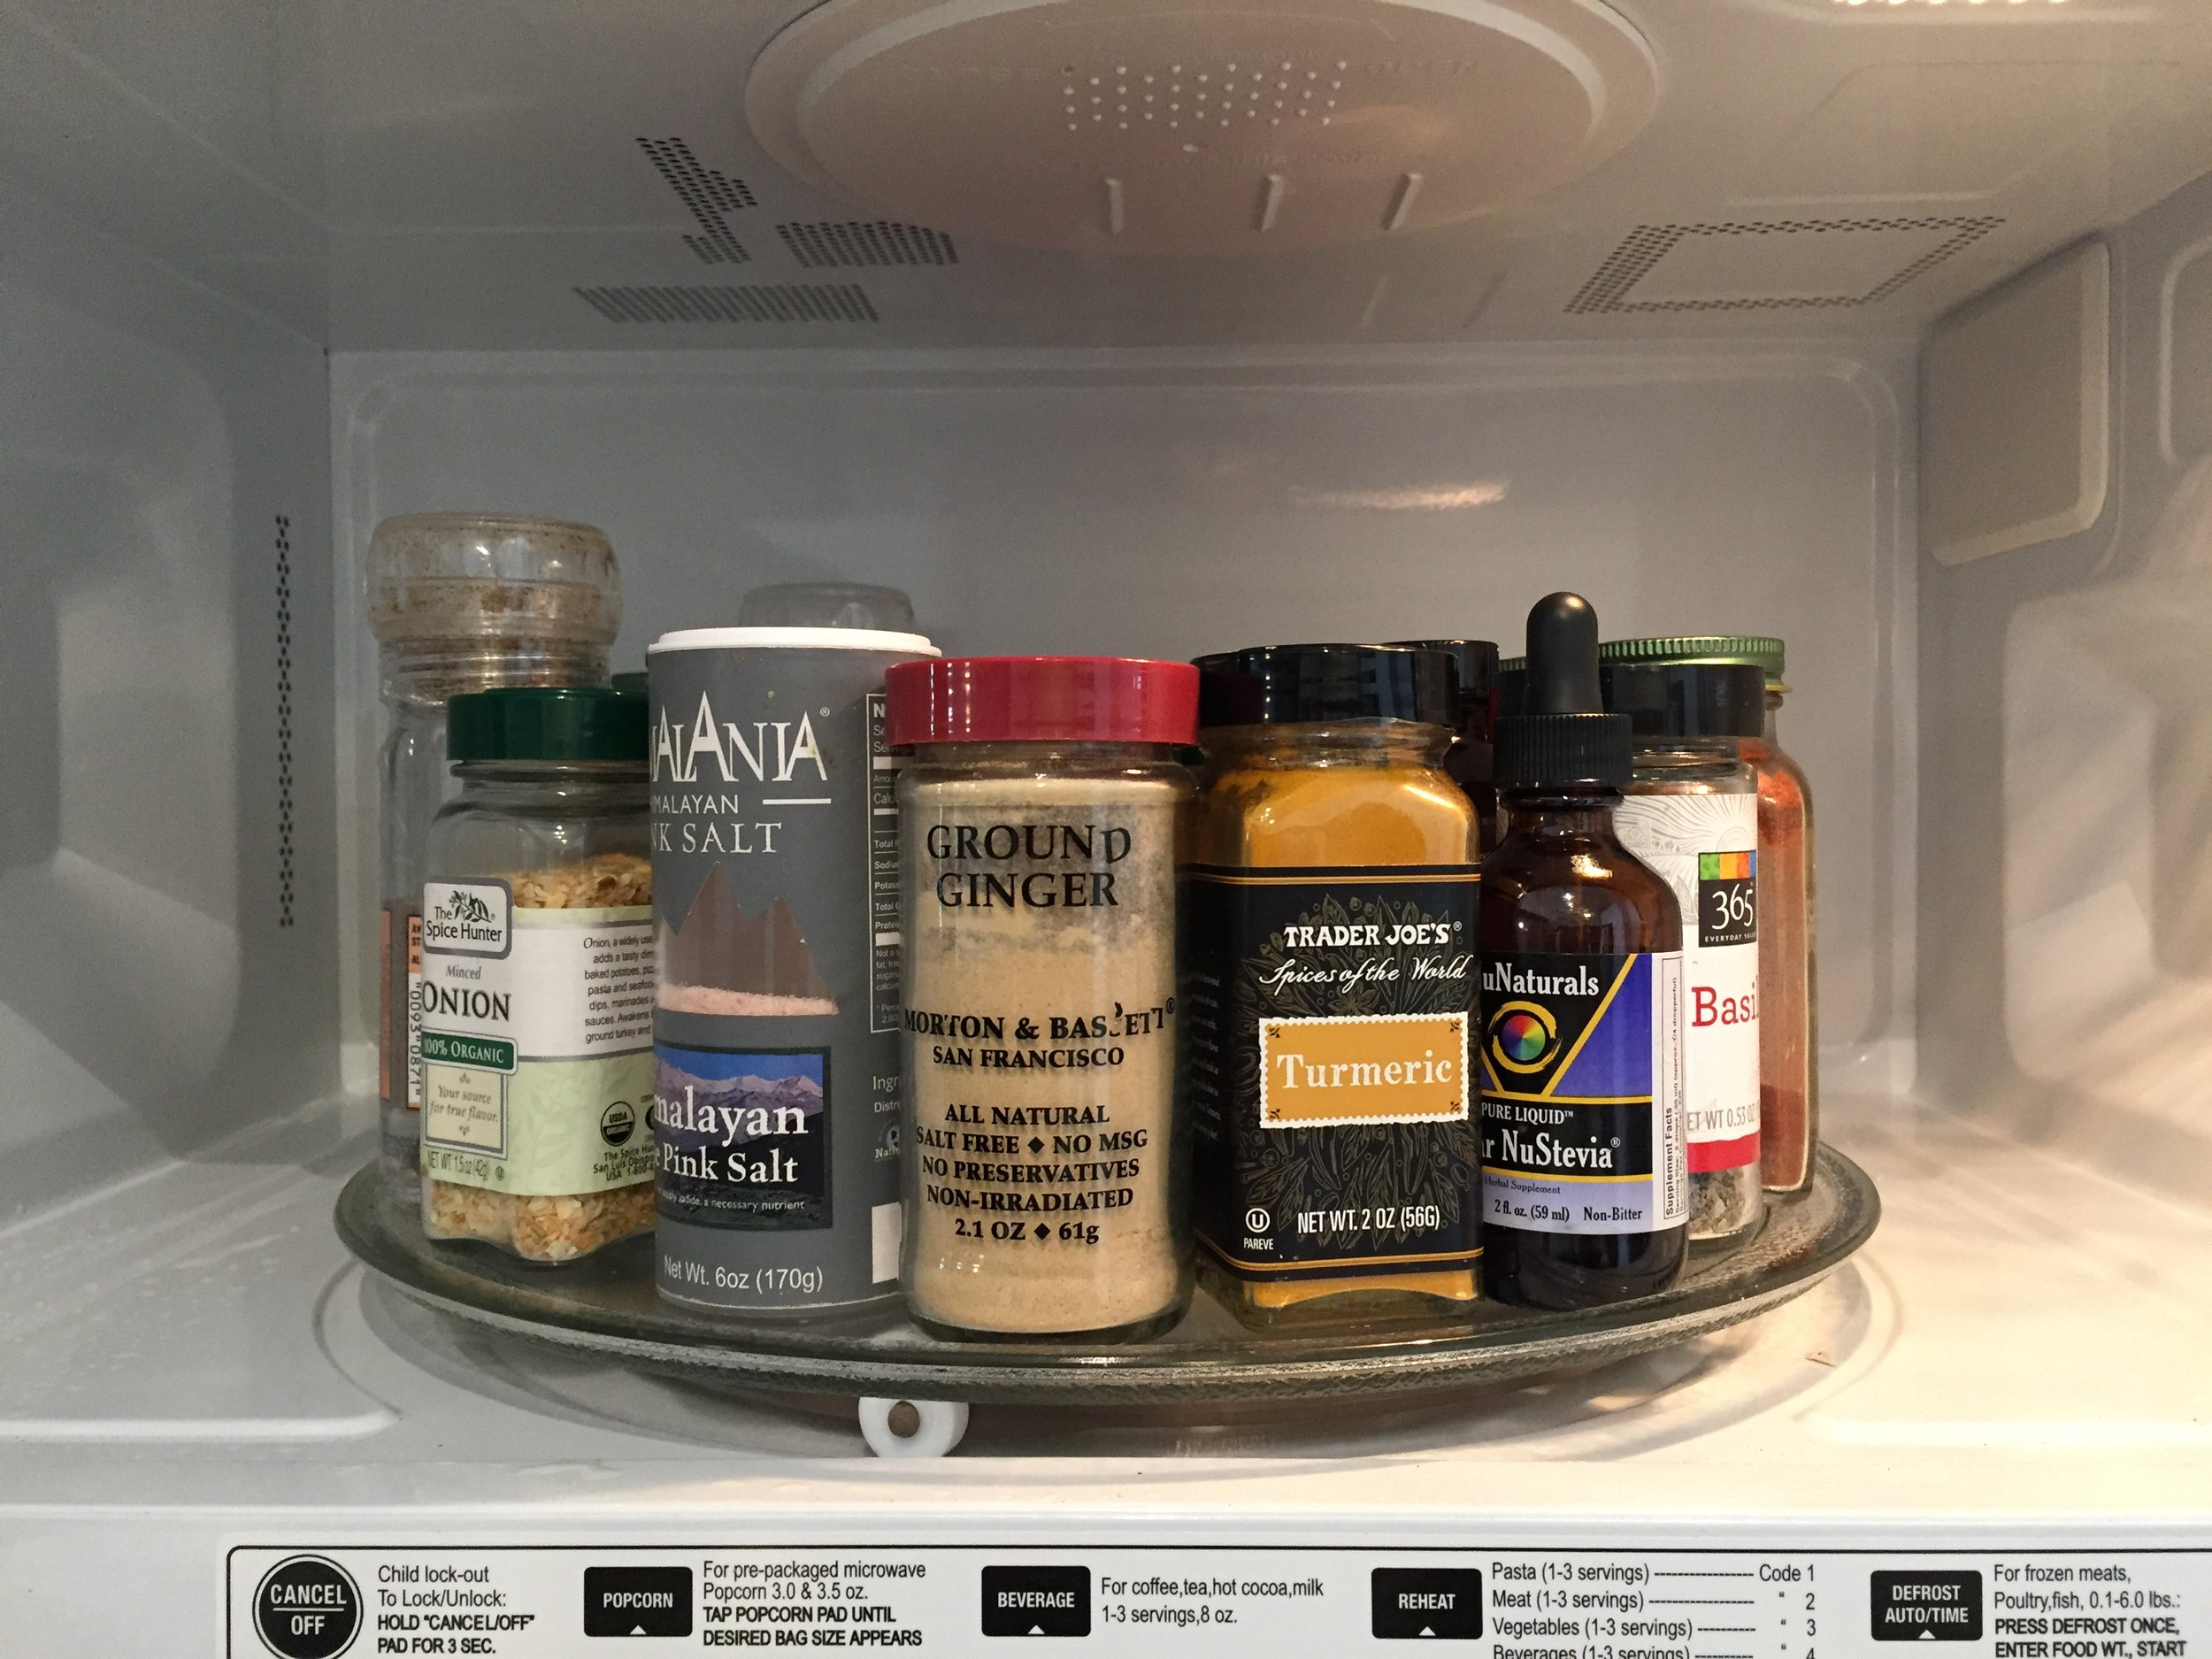 it's easy to find the right herb when the thing is in spin. Always Turn by hand and never turn on the microwave if using for spice storage.